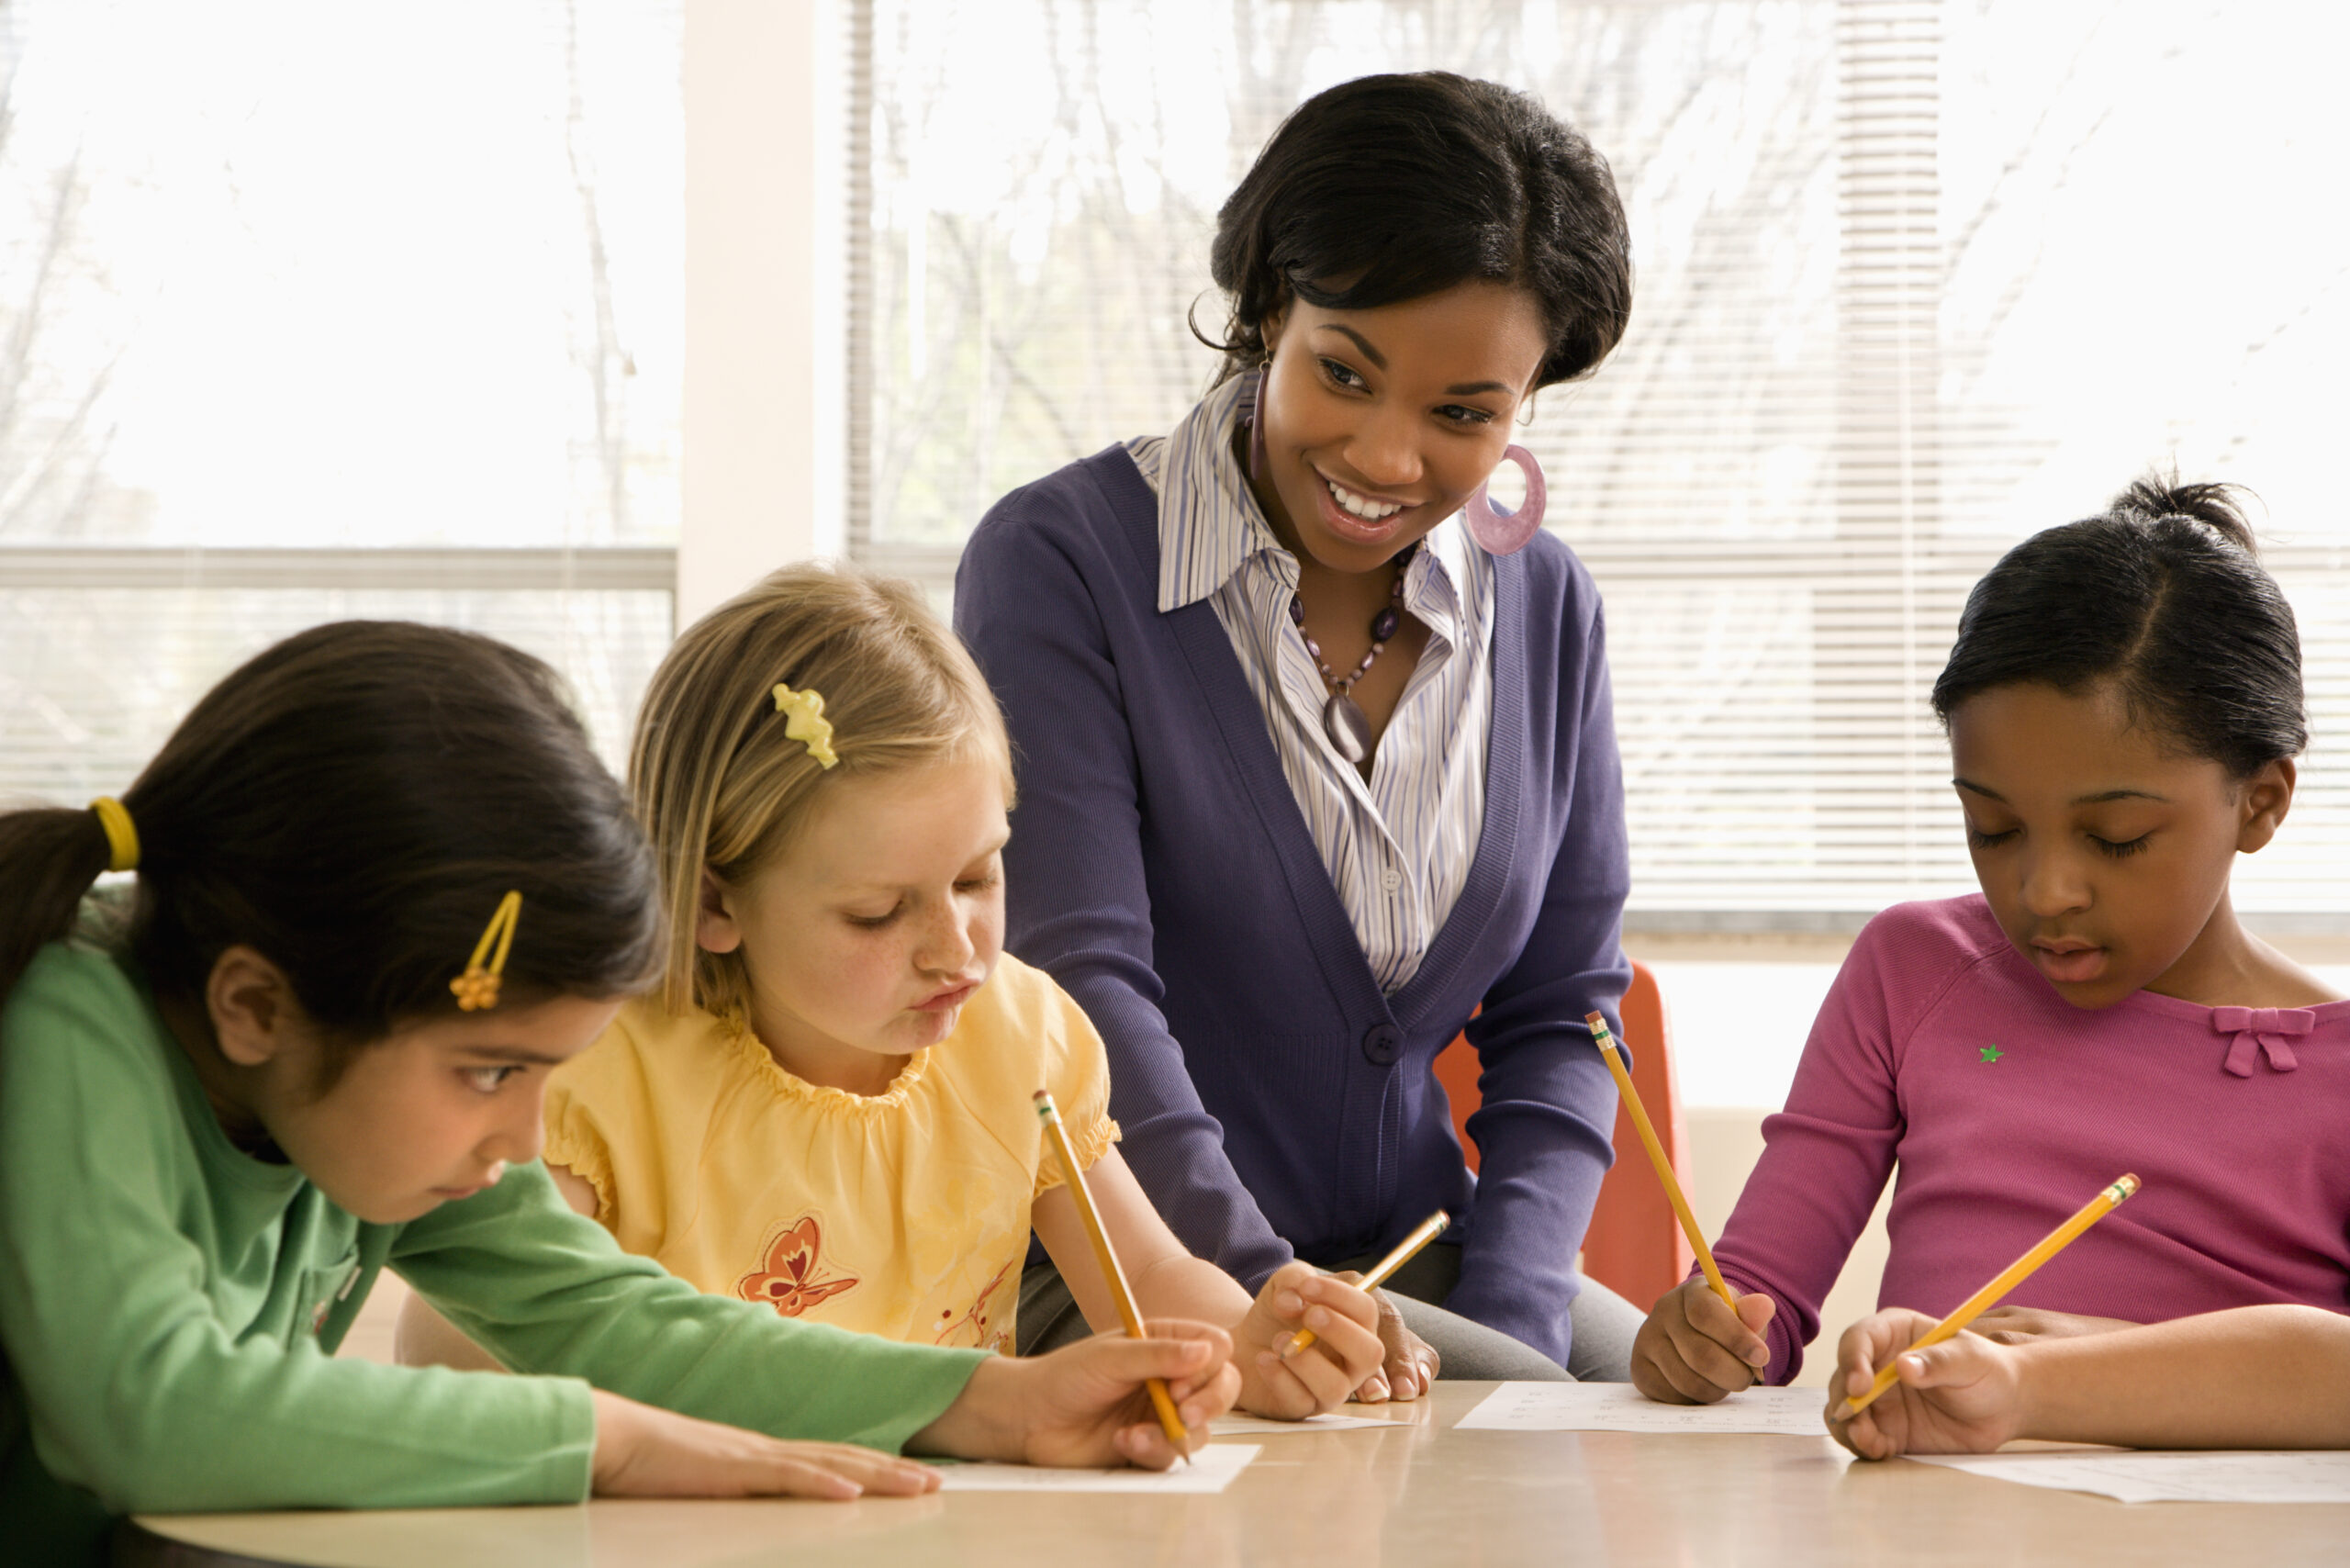 three children wiritng at a desk with an adult sat smiling at them. Teacher helping students in school classroom. Horizontally framed shot.